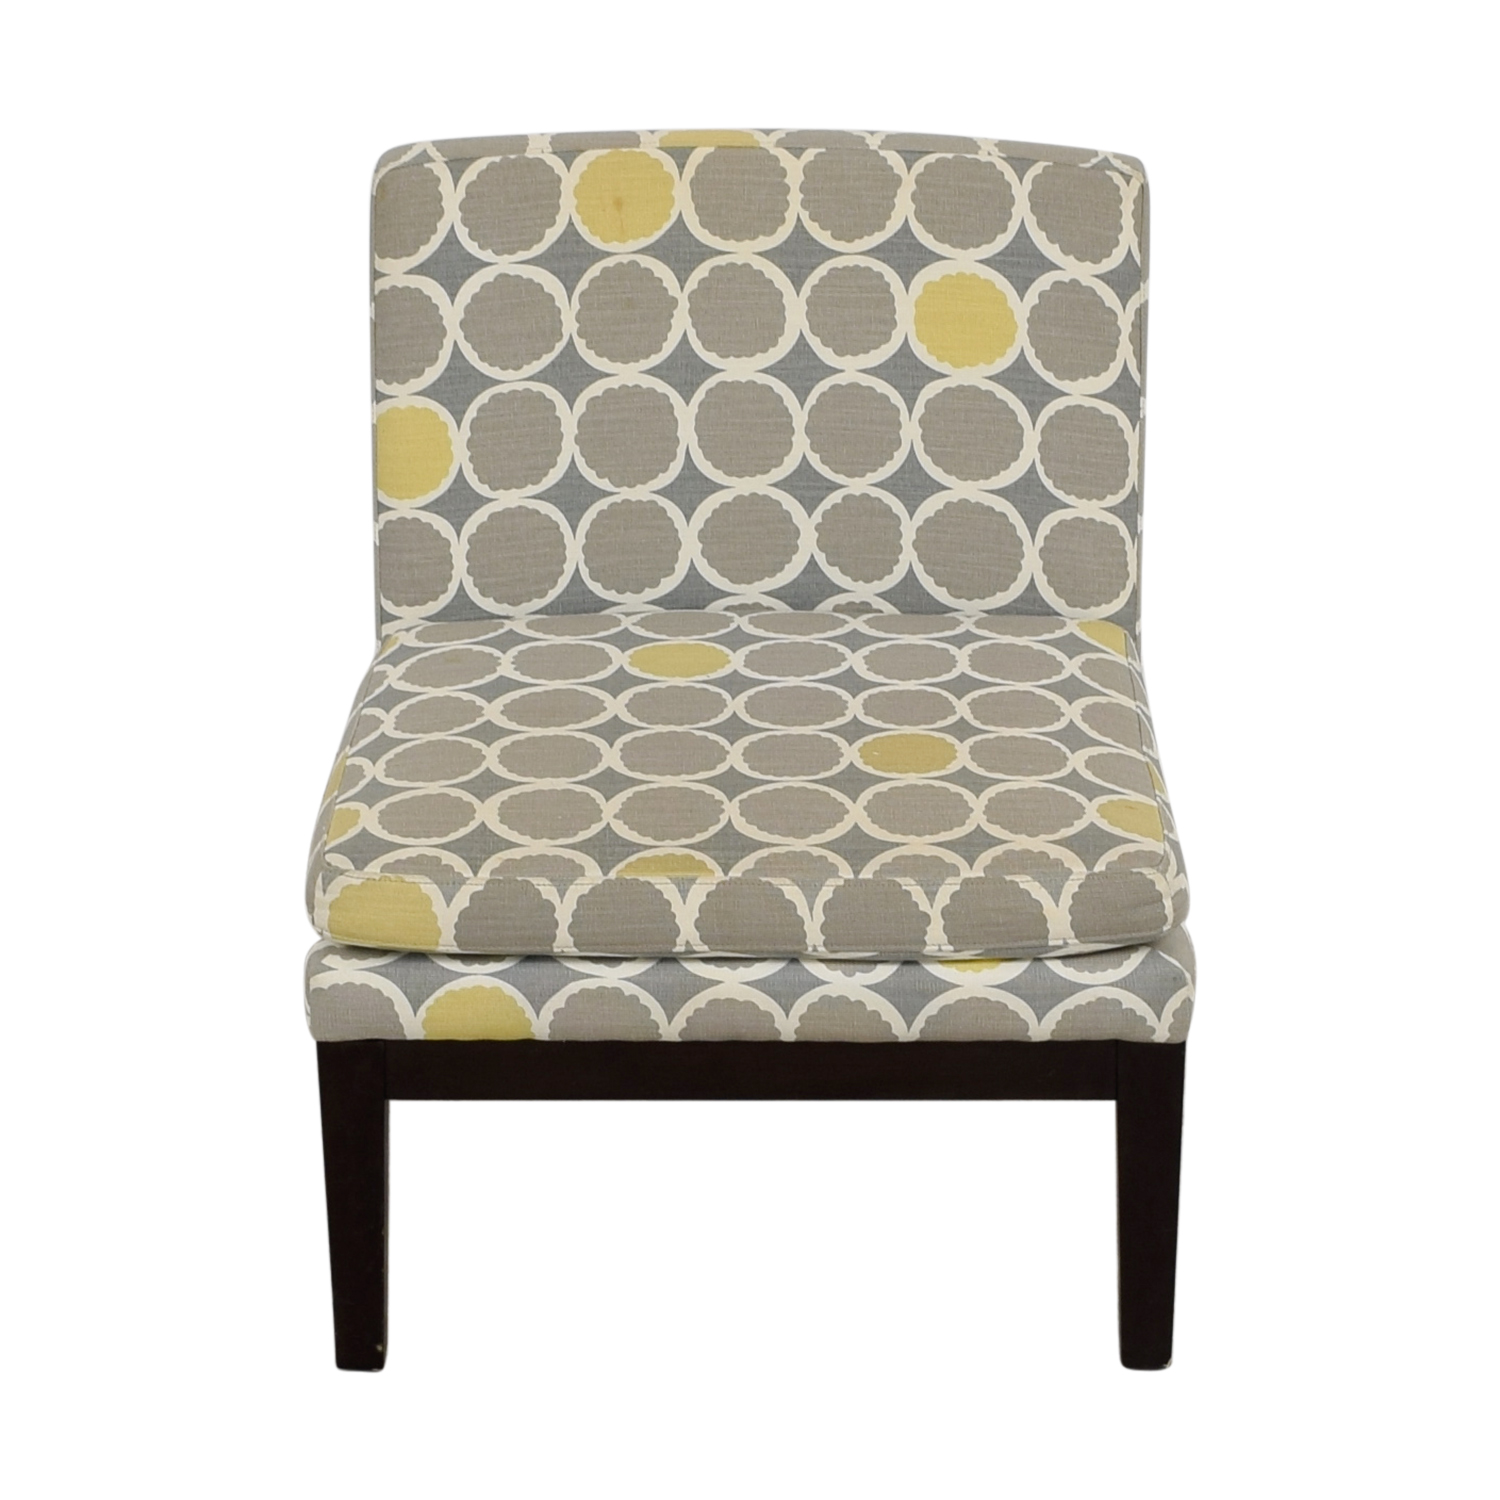 gray and yellow accent chair 4moms high 72 off west elm grey white